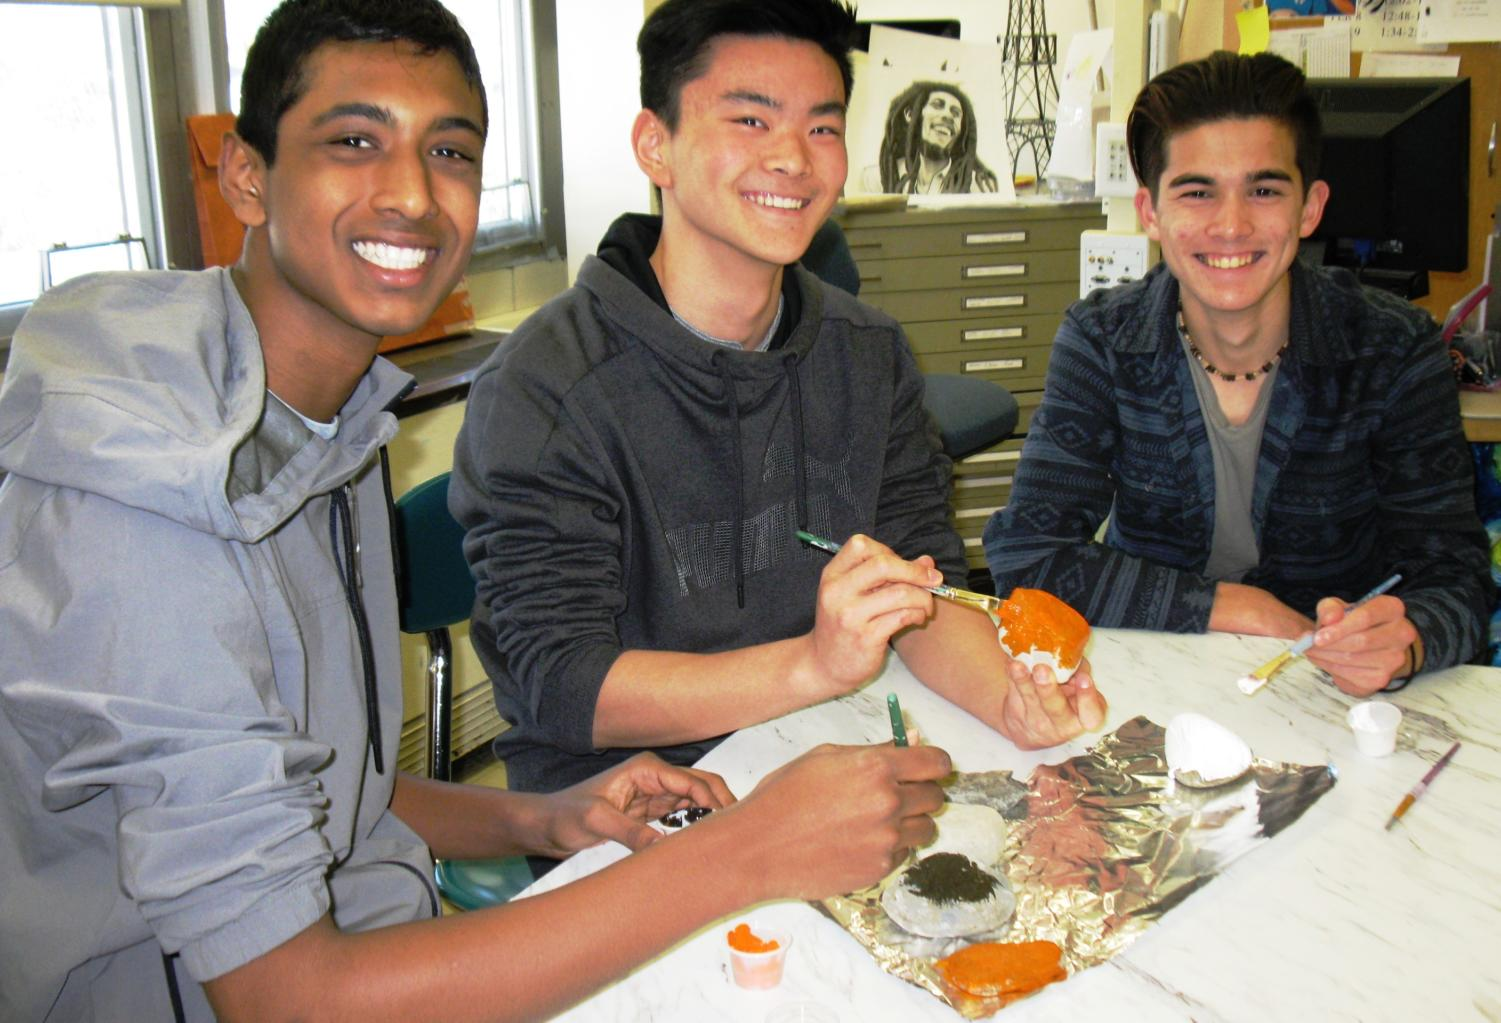 Tennis Club members, Kaushik Tallam, Shawm Joo, Jeff Angello paint rocks for the rock garden.